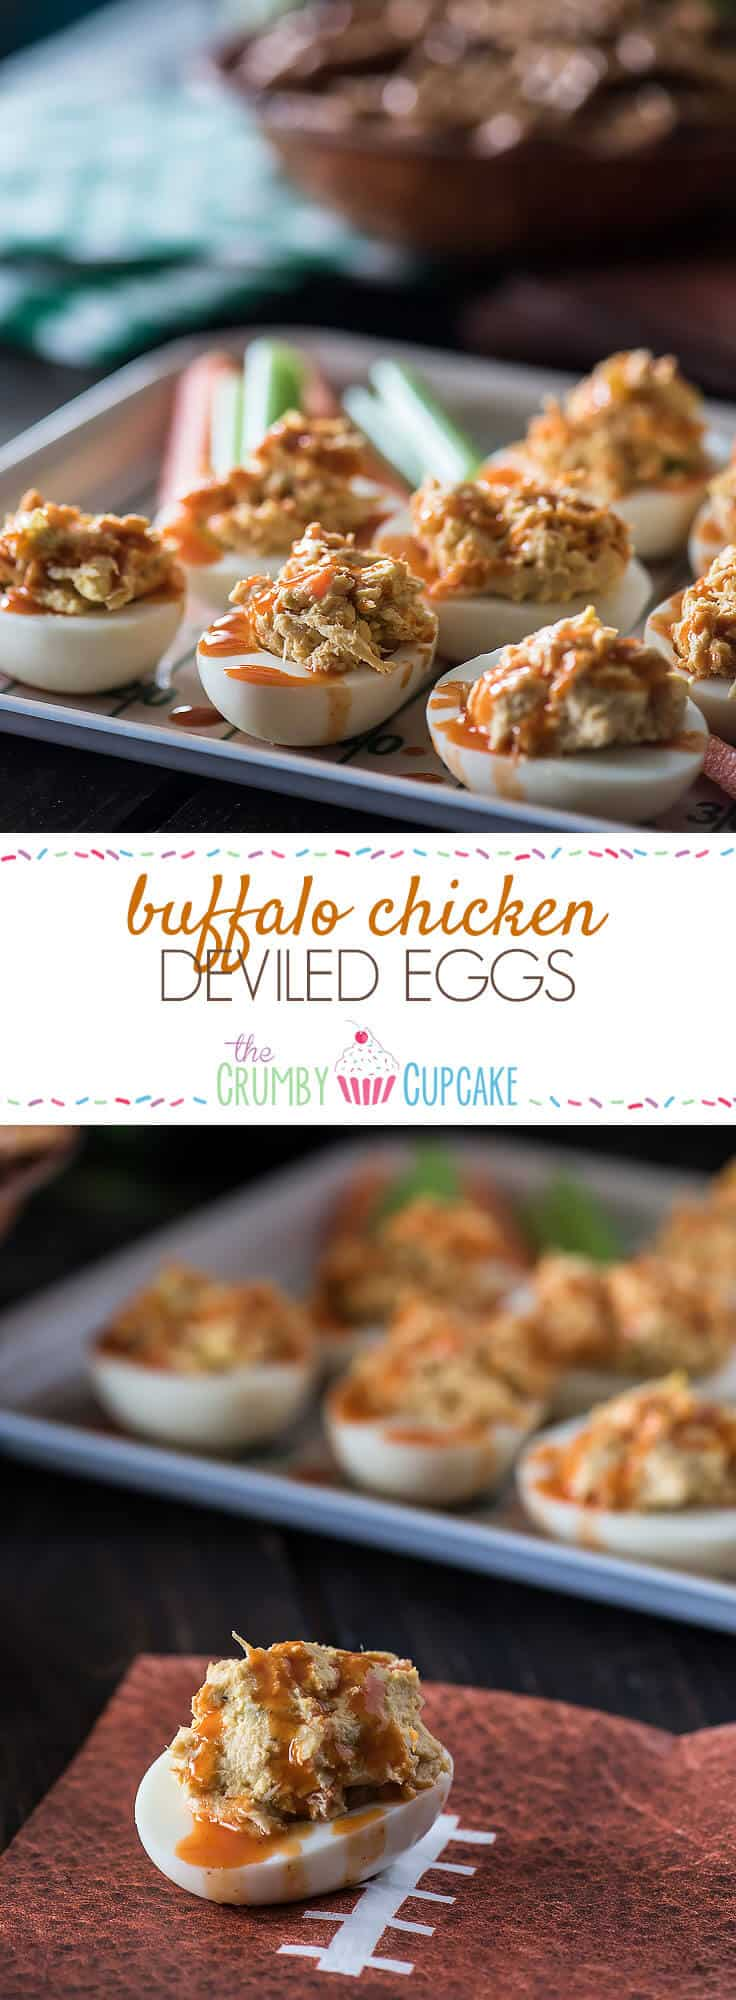 Can't decide between the chicken or the egg? Have both! These Buffalo Chicken Deviled Eggs are everything you love about big game appetizers, and so much more!